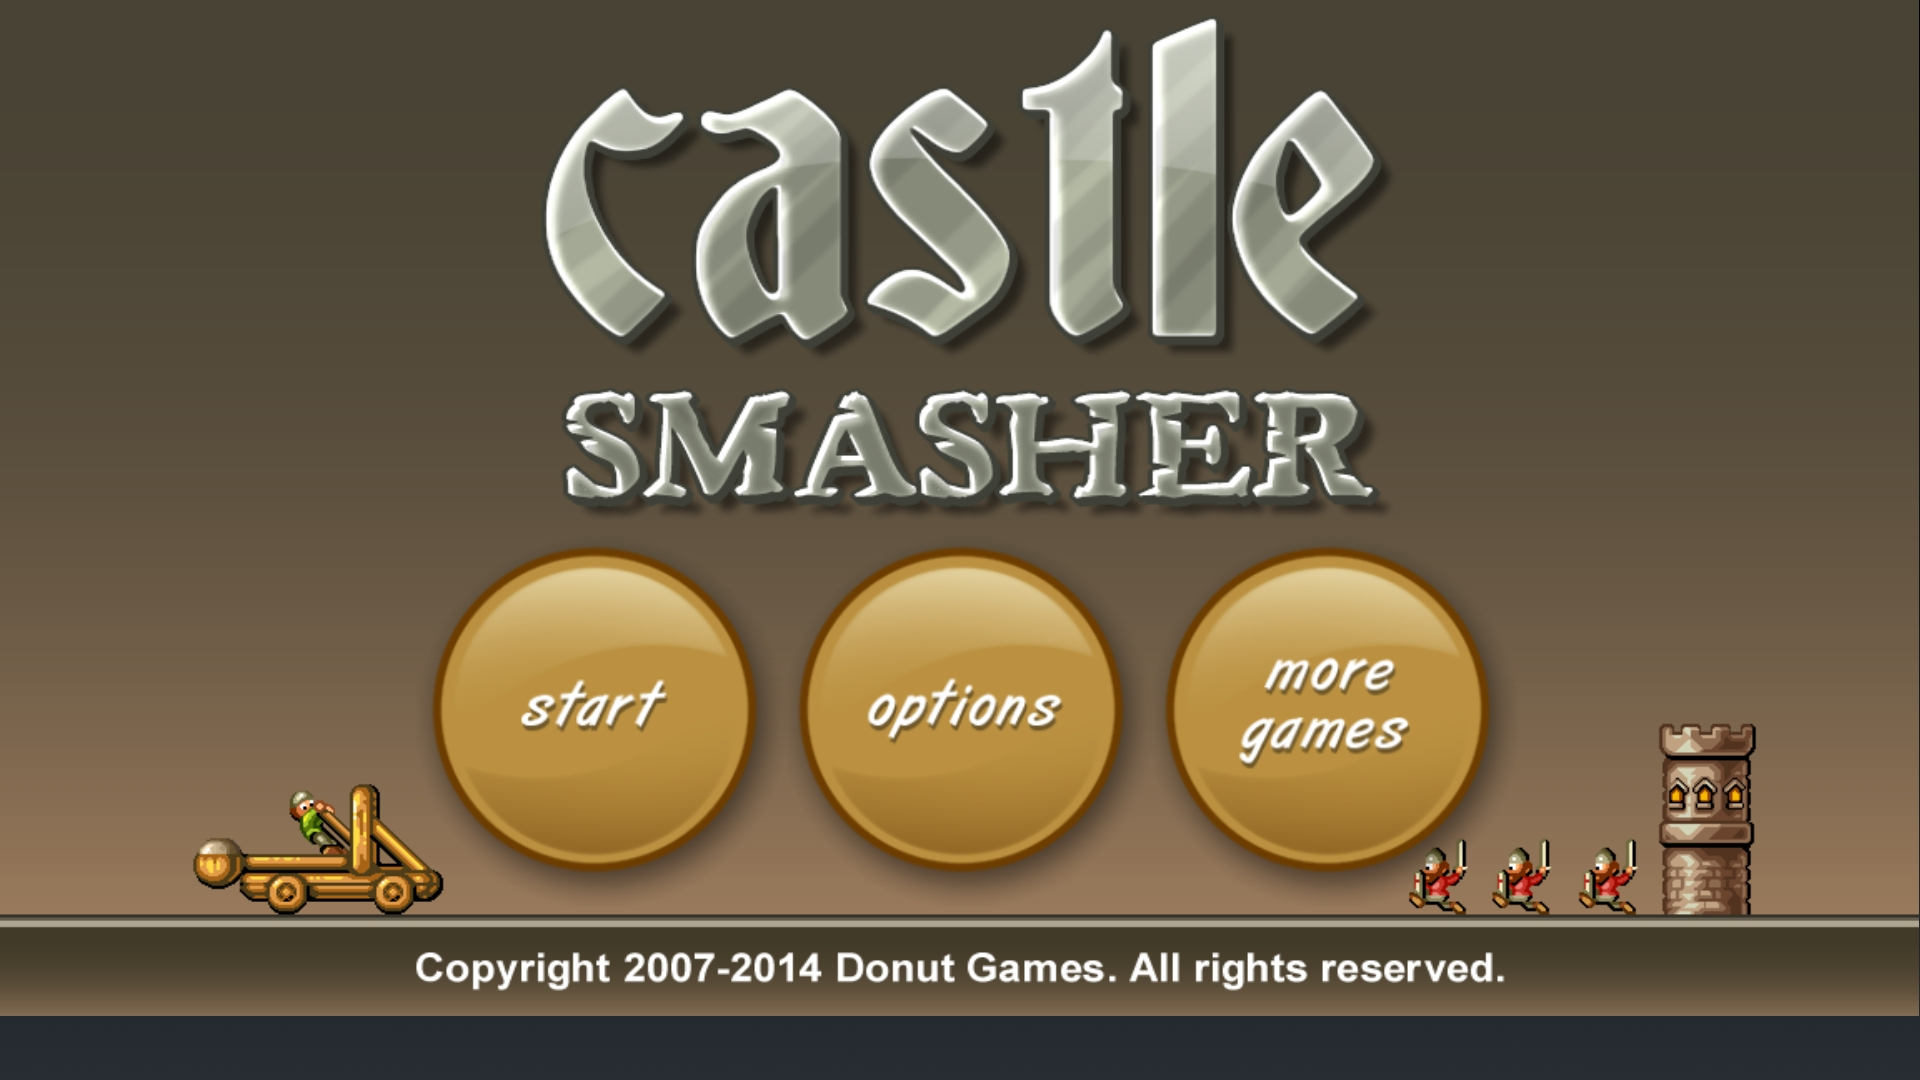 Bamse: Castle Smasher: Challenges: 34 Triple Torches (Android) 47 points on 2019-09-10 17:47:33